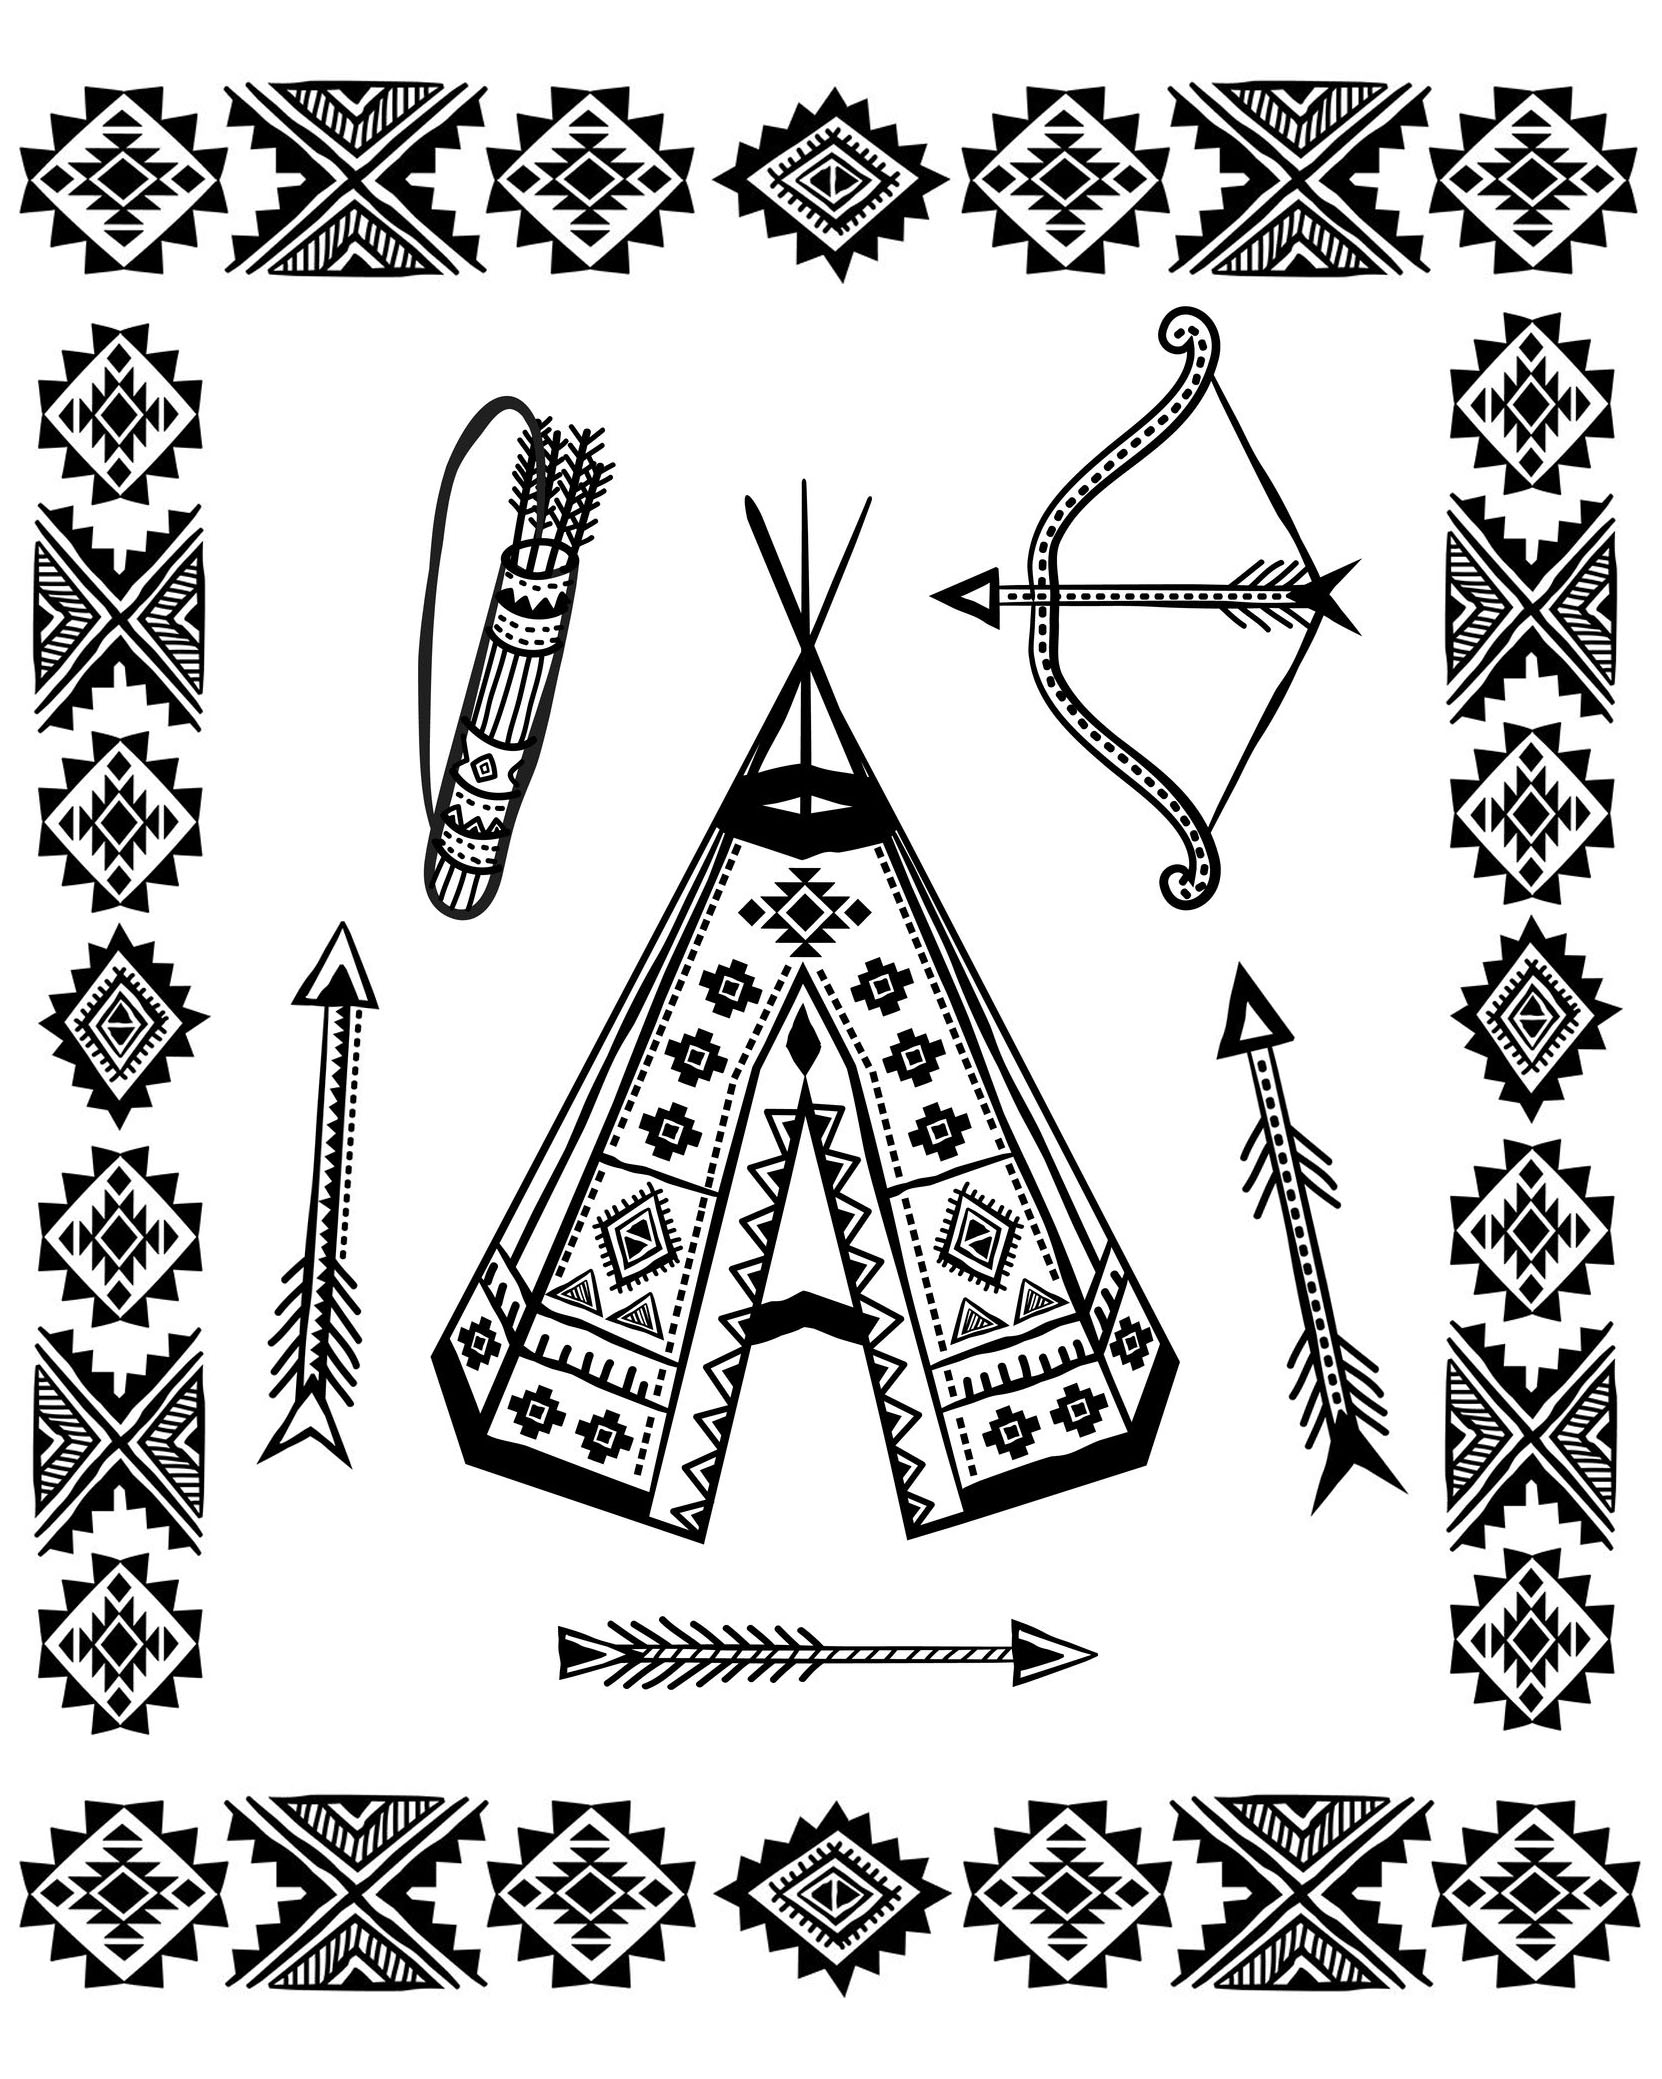 coloring page with a tipi and other symbols from the gallery native americans - Native American Coloring Pages